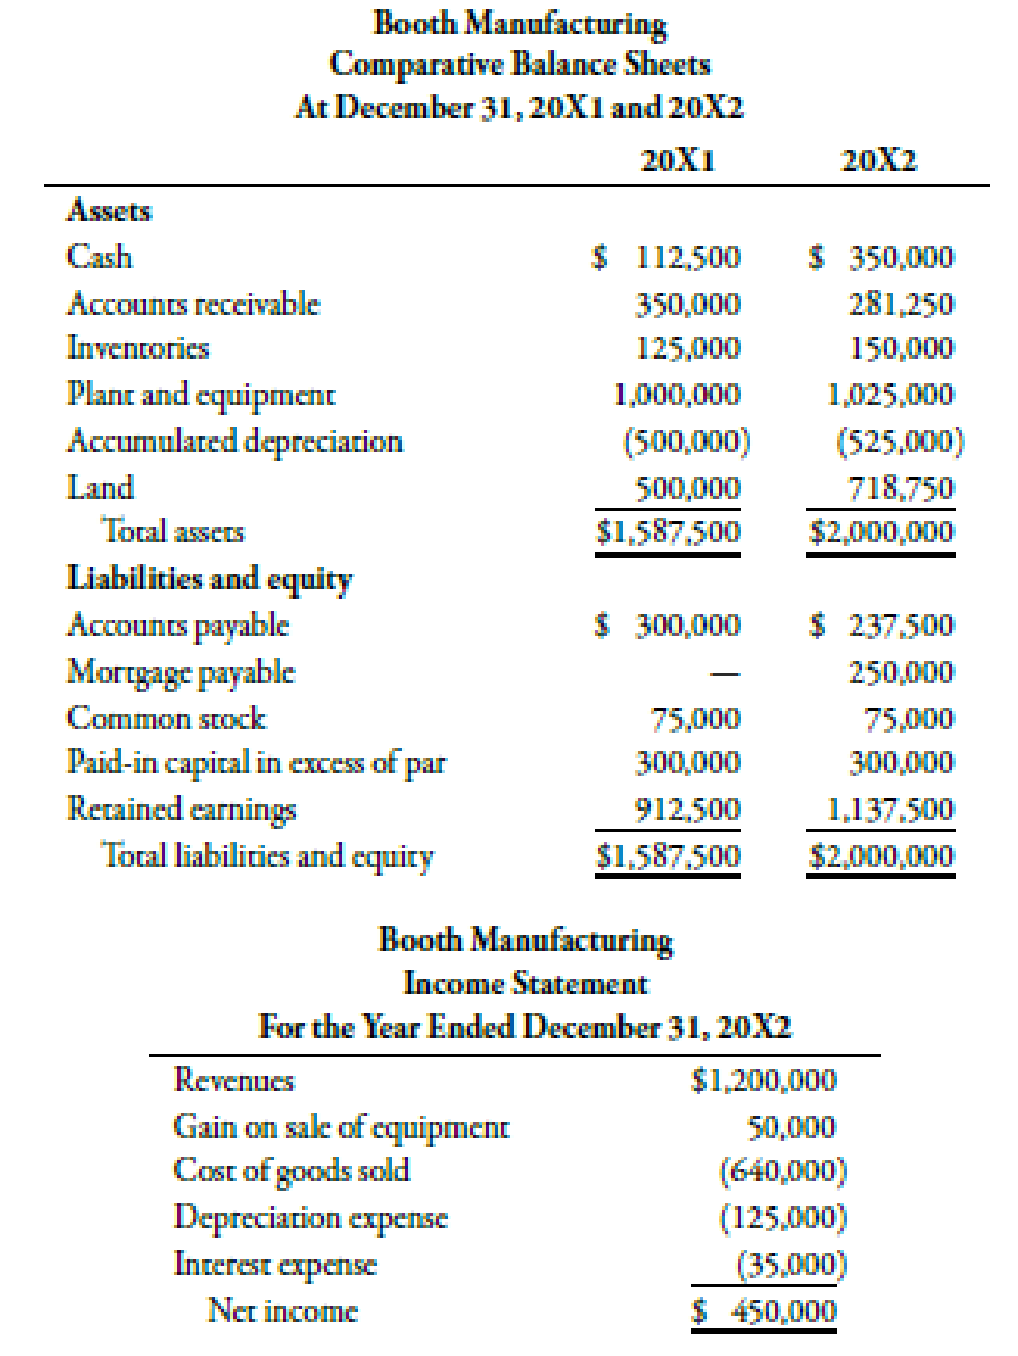 Chapter 14, Problem 48P, Booth Manufacturing has provided the following financial statements. Other information includes: (a)